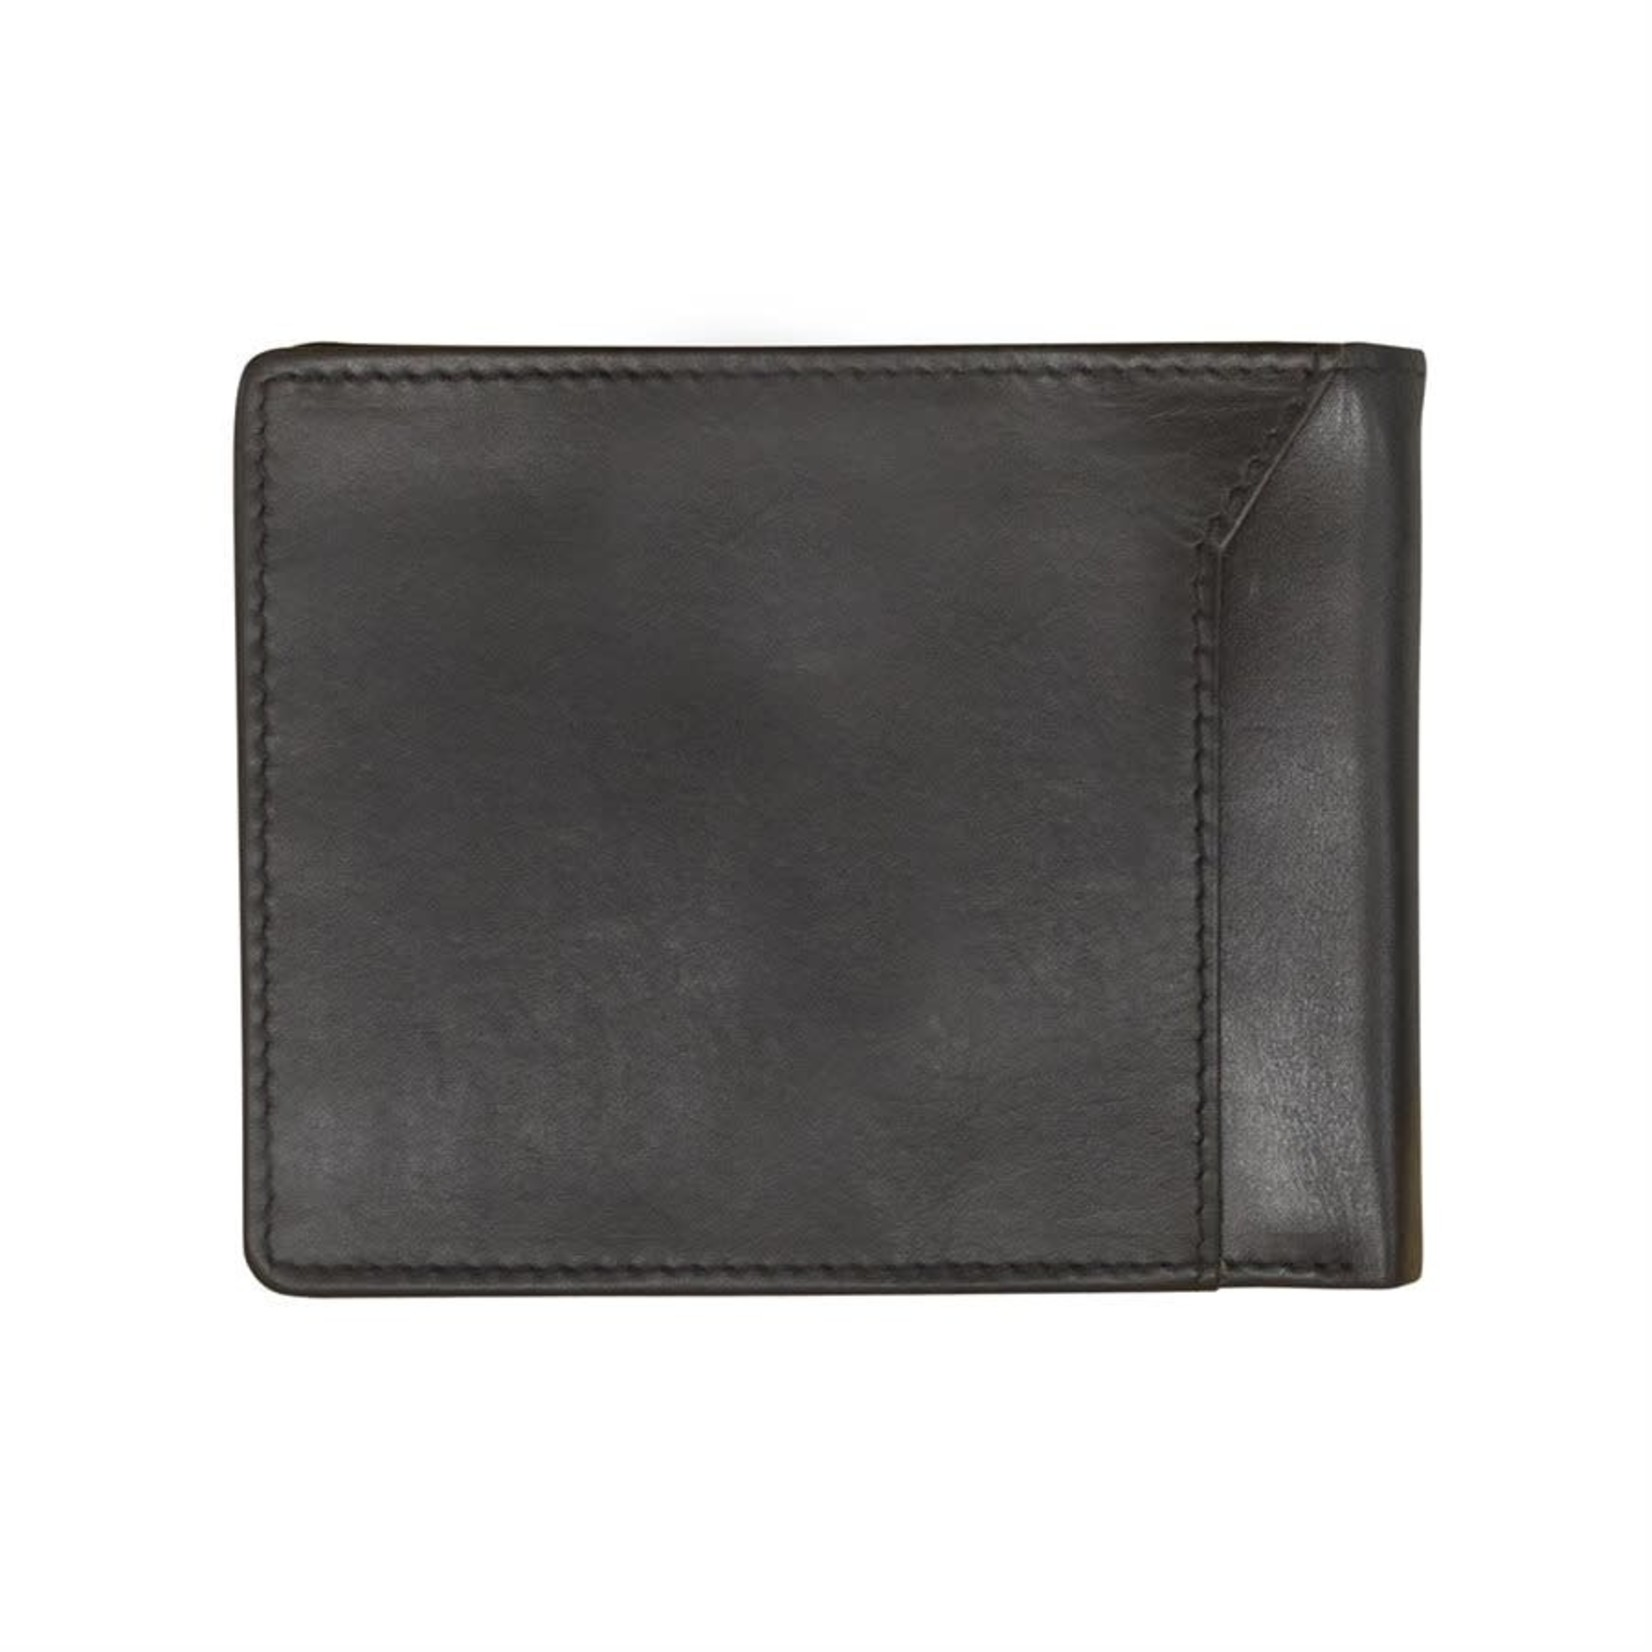 Leather Handbags and Accessories 7720 Black - RFID BiFold Wallet